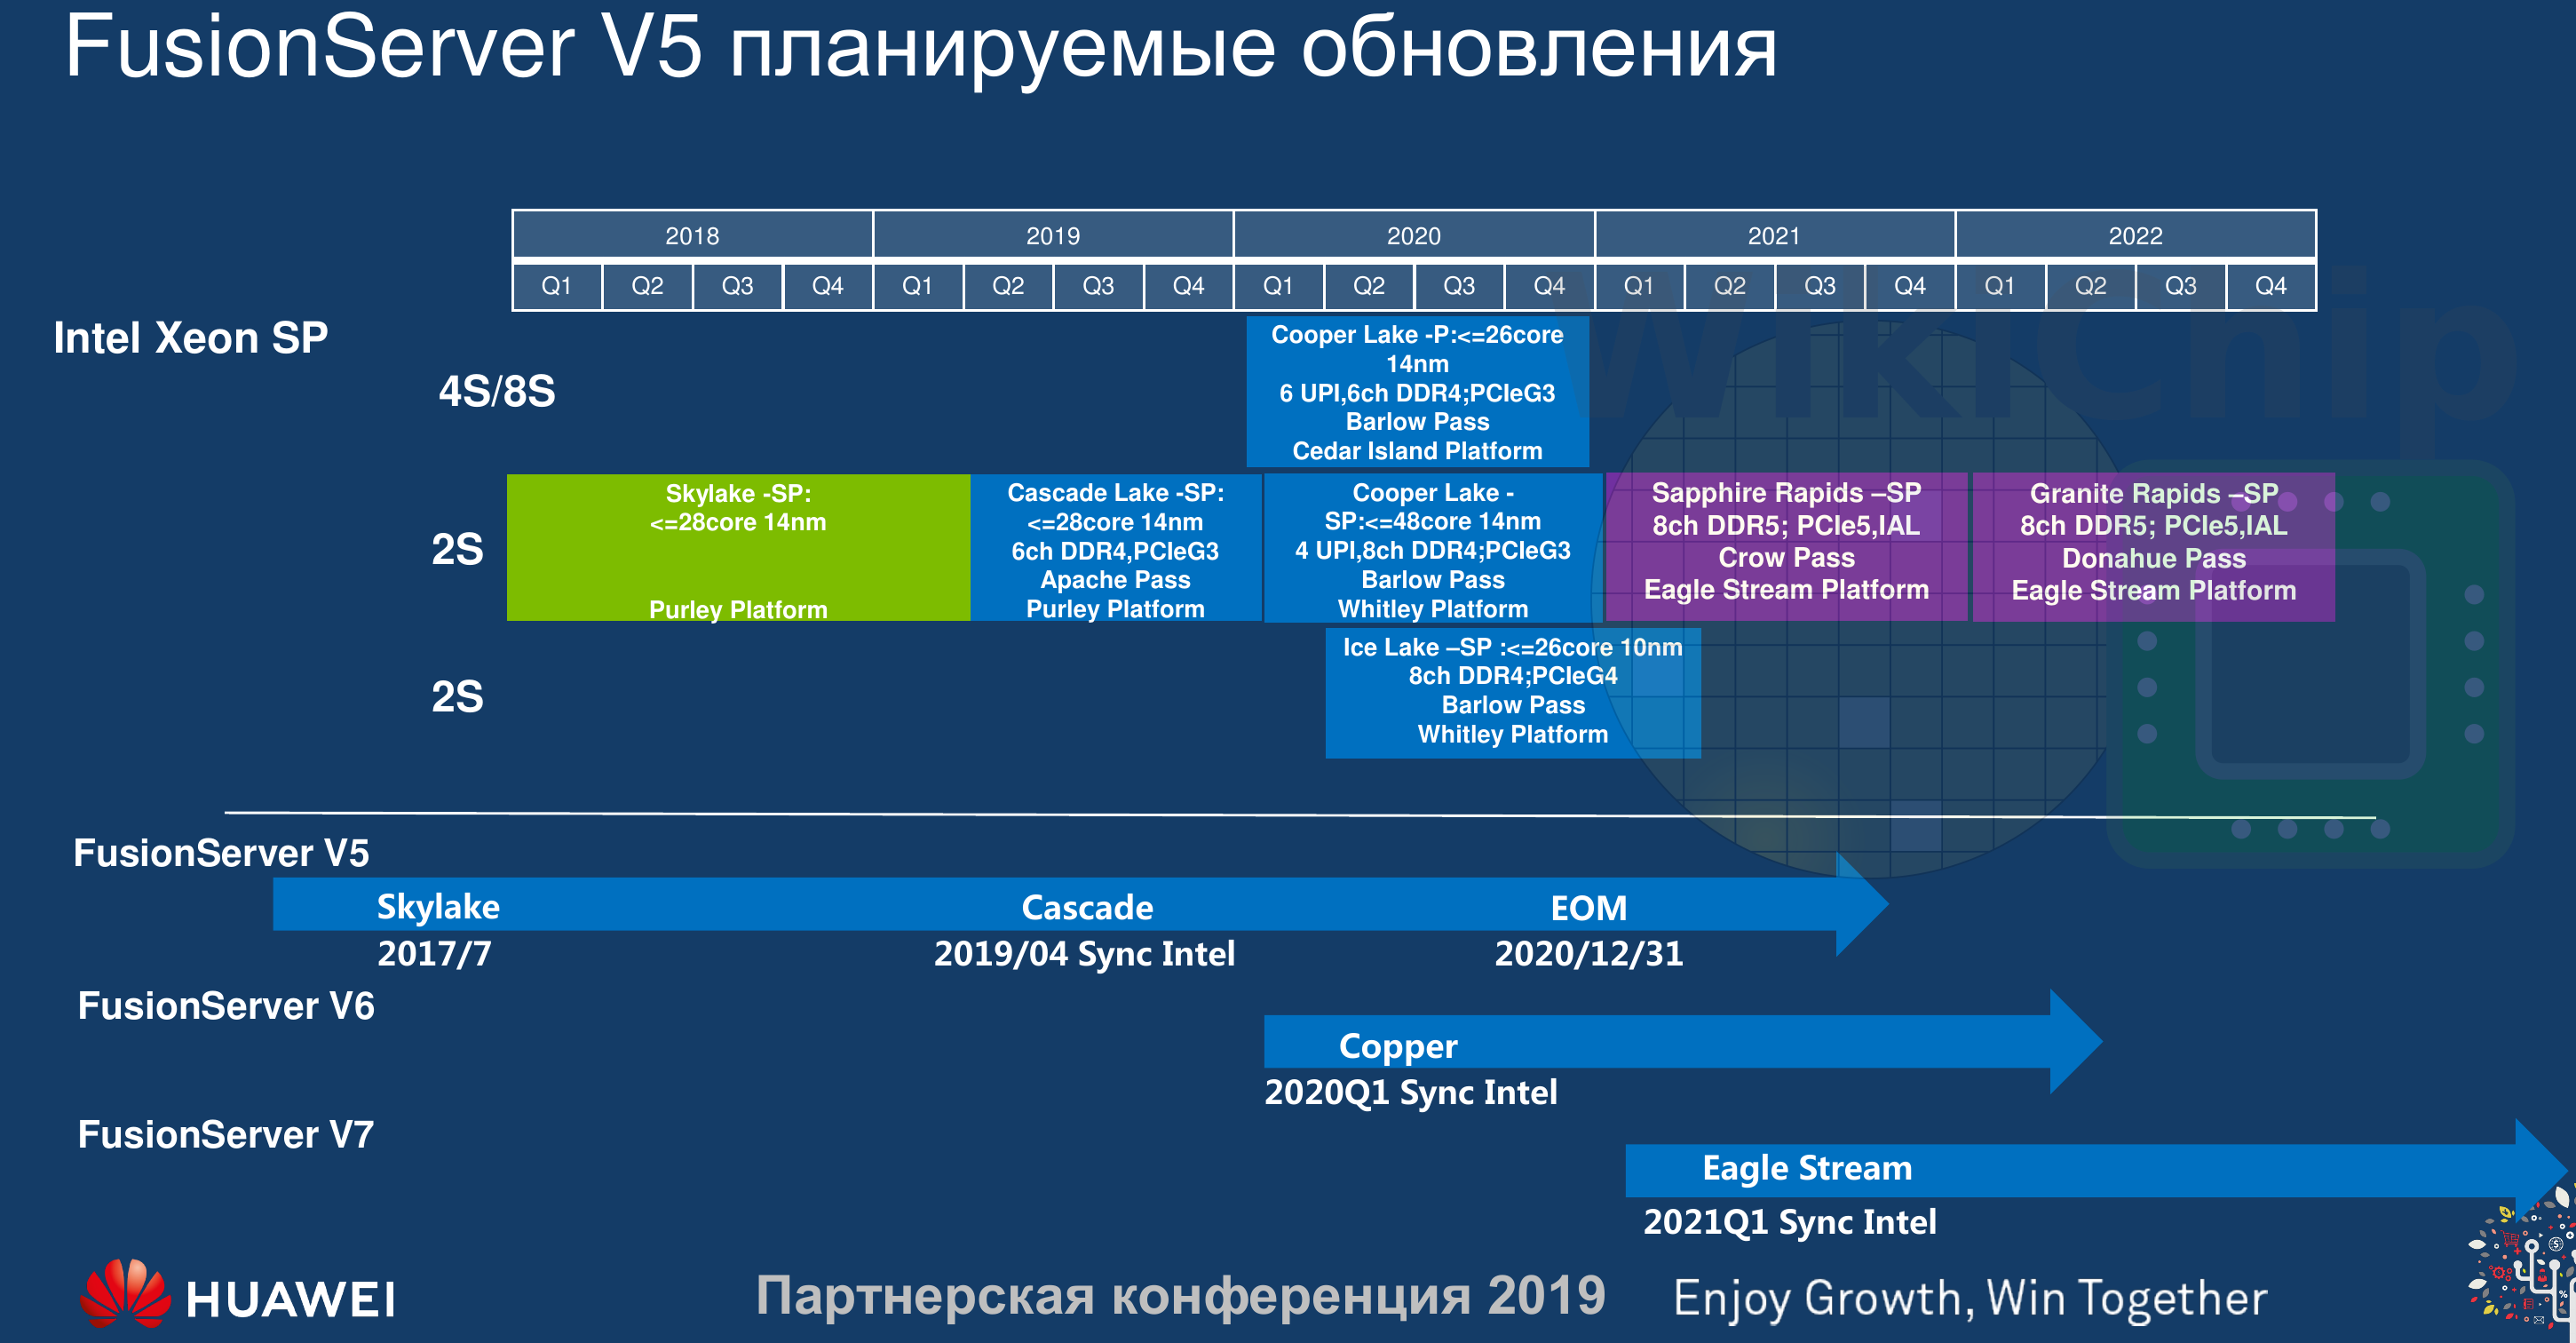 Leaked Intel Server Roadmap Shows Sapphire Rapids With DDR5/PCIe 5.0 For 2021, Granite Rapids For 2022